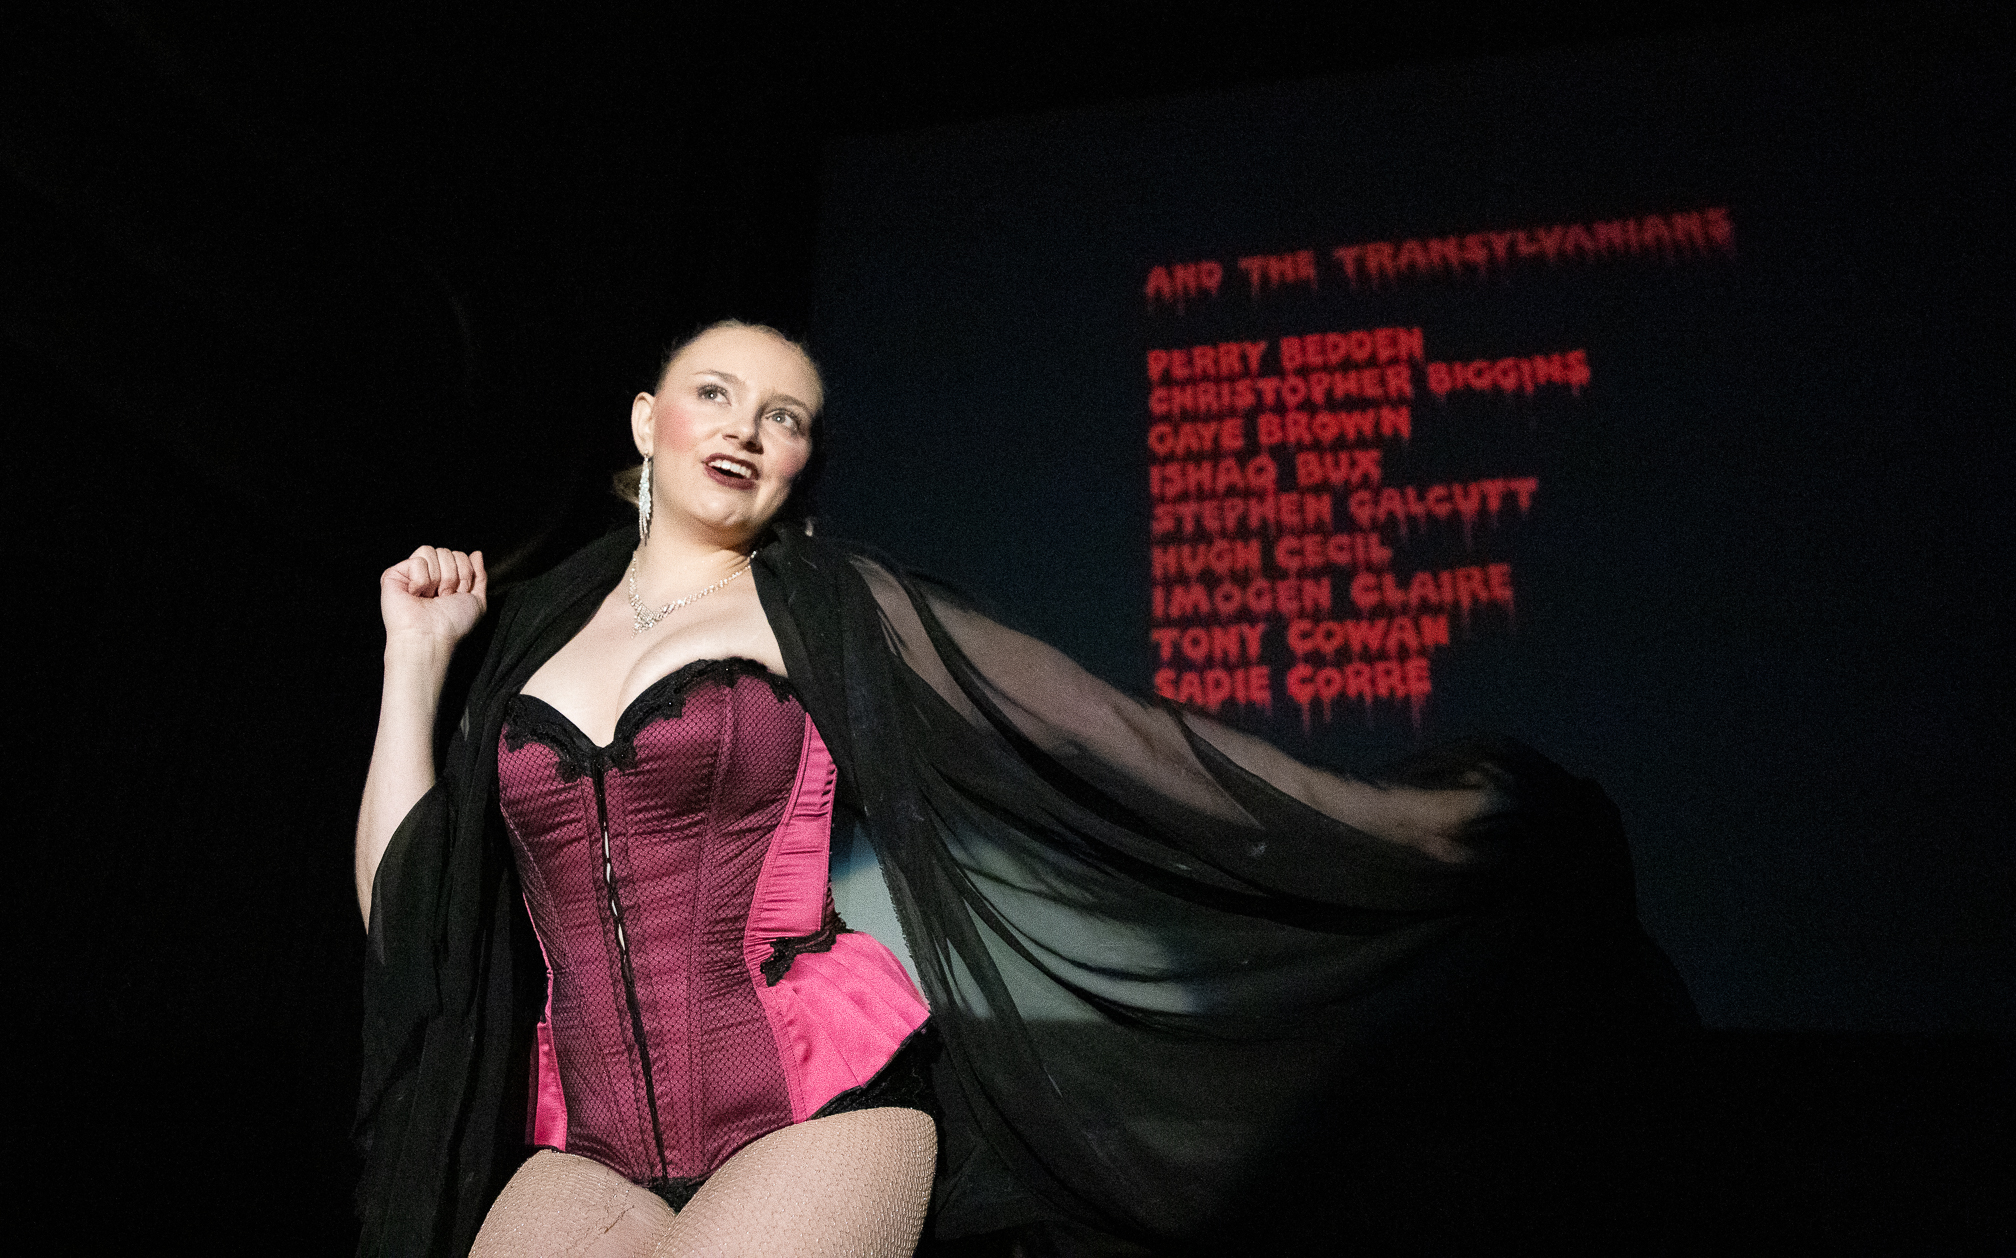 Katie Martin performs as Trixie during the closing credits of the film.